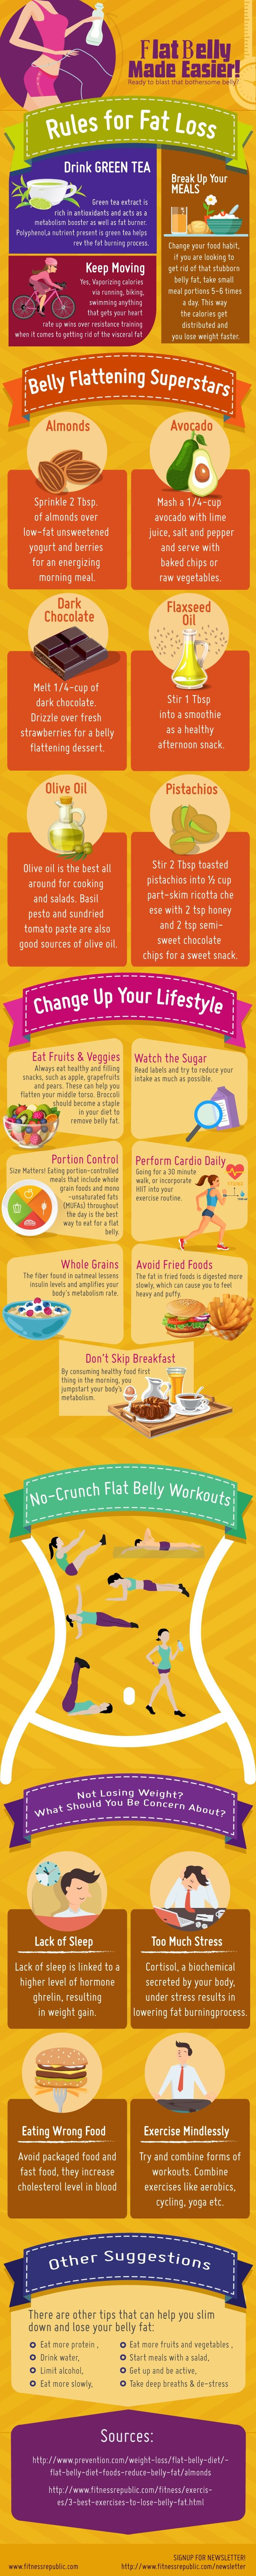 Infographic: How To Attain A Flat Belly